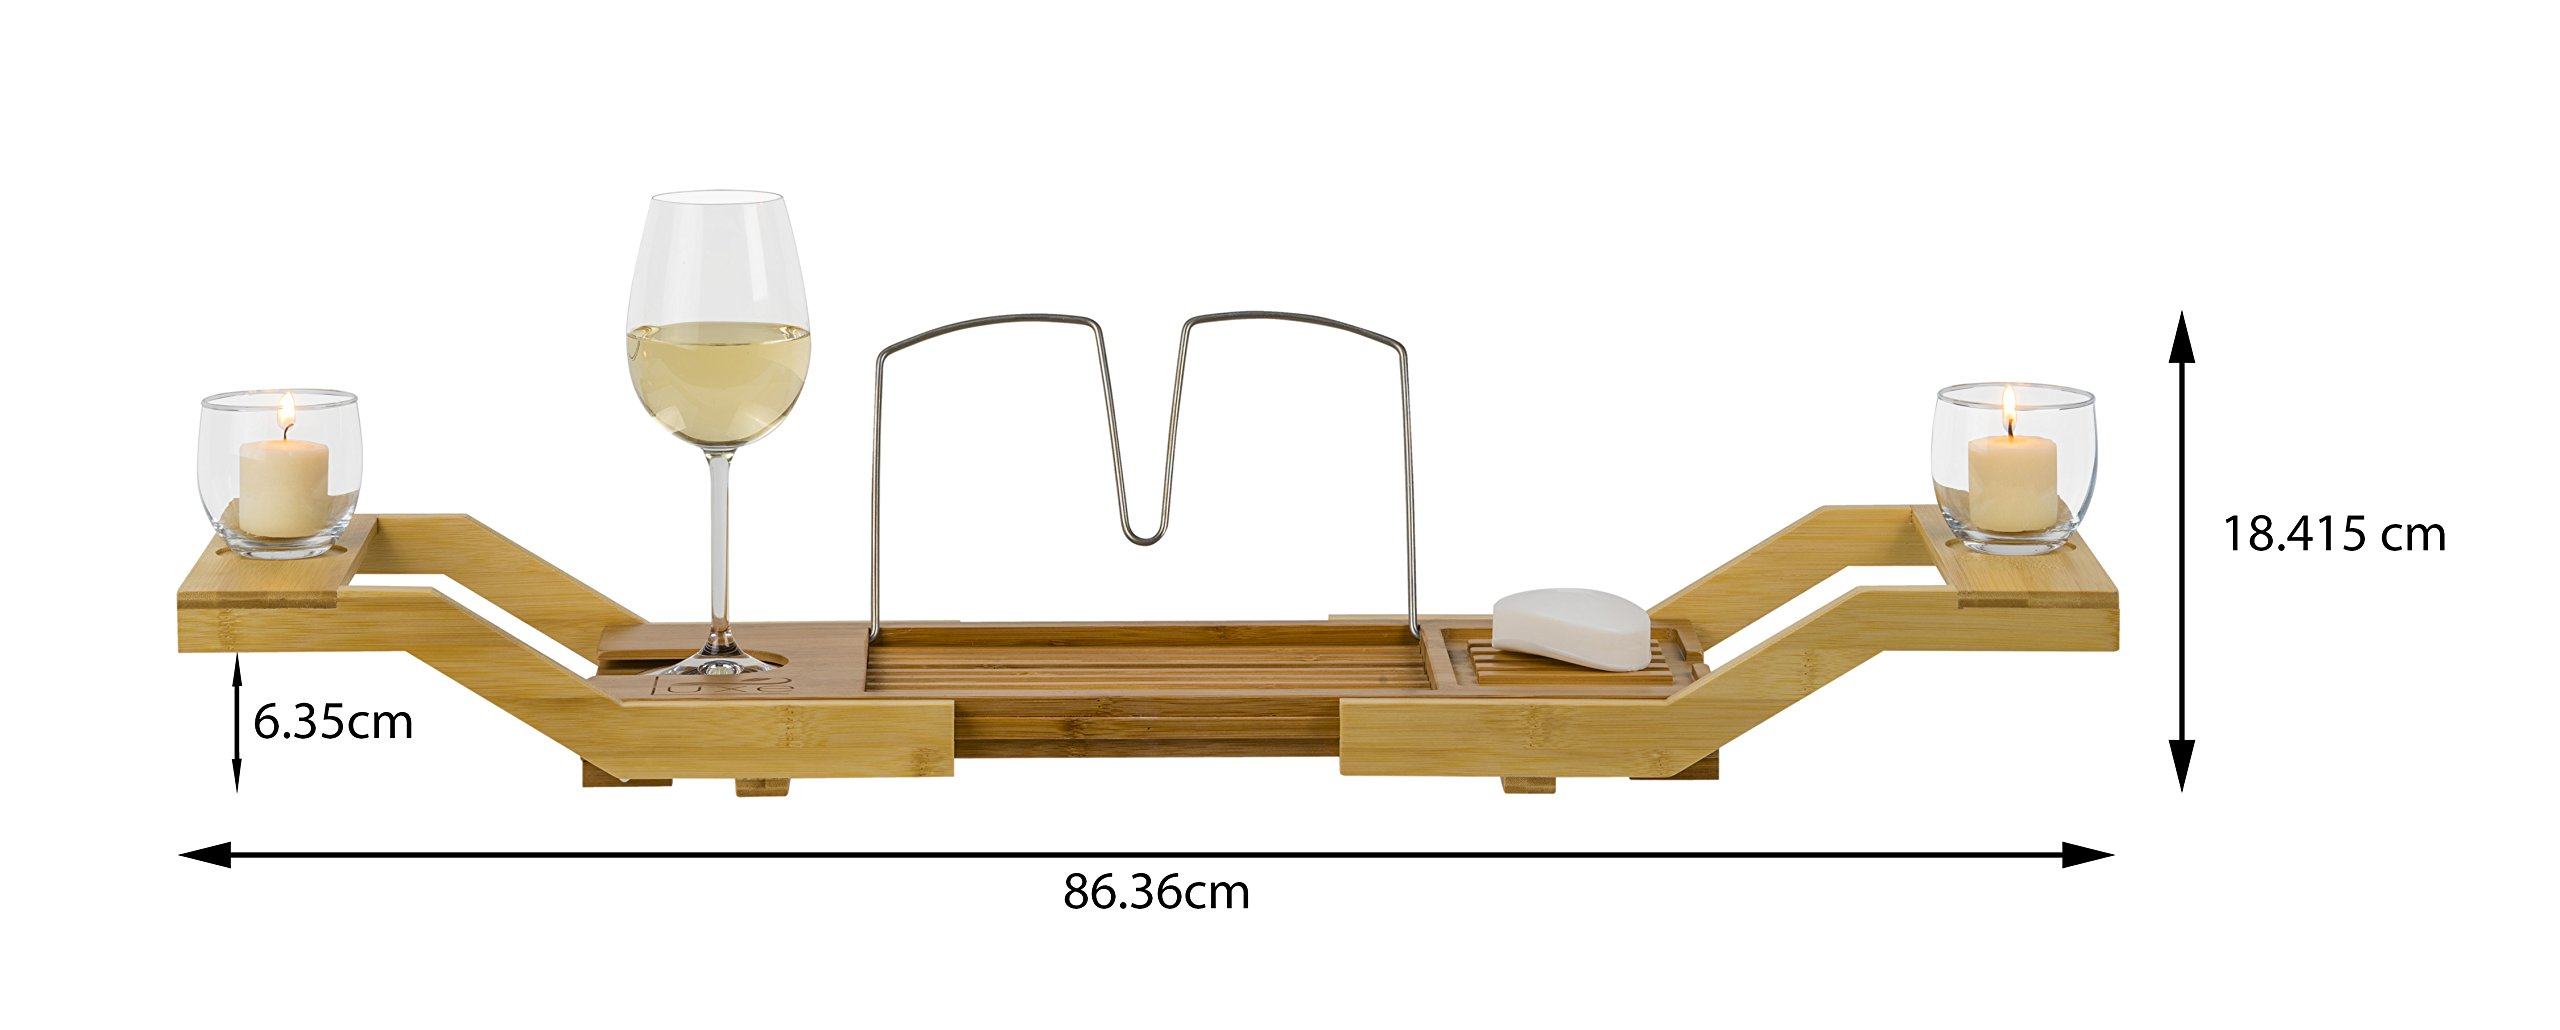 Luxe Expandable Bamboo Bathtub Caddy Adjustable Wooden Serving Tray & Organizer w Book Reading Rack, Wine Glass Holder by Luxe (Image #7)